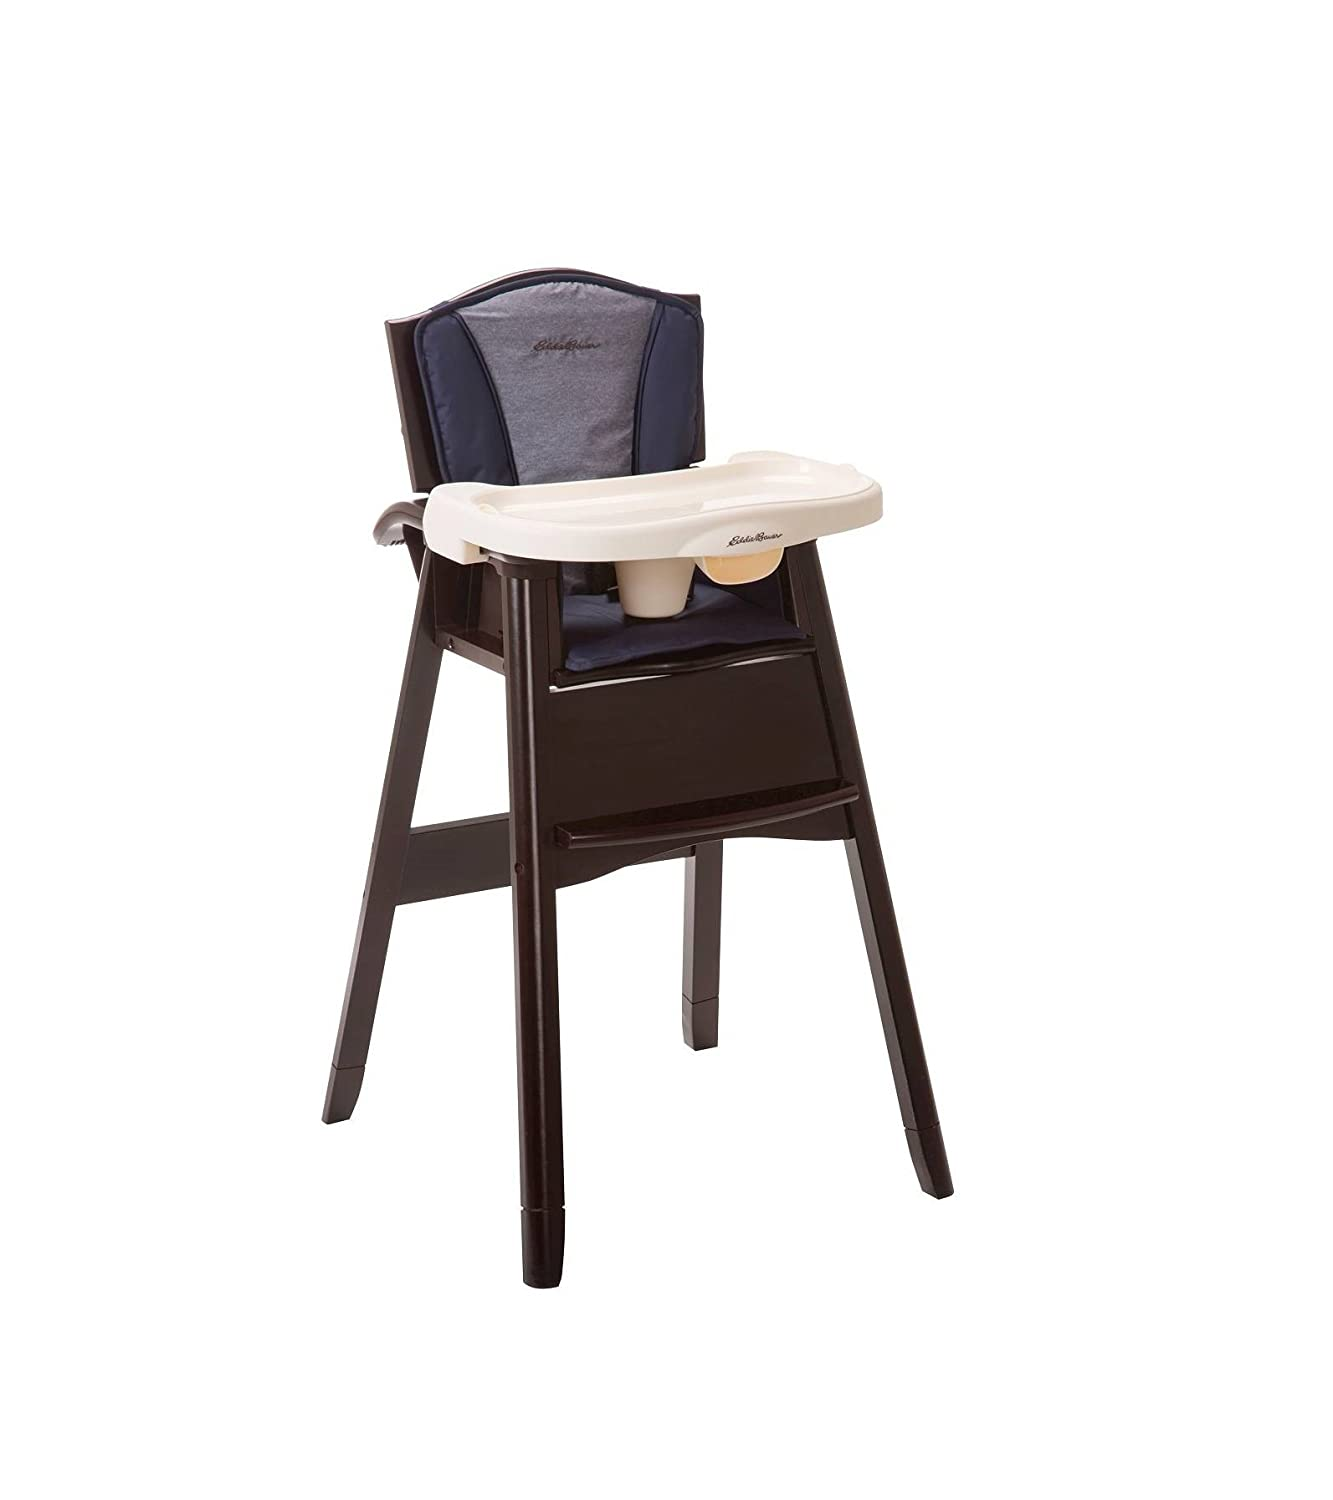 Amazon Ed Bauer Classic 3 in 1 Wood High Chair Twilight